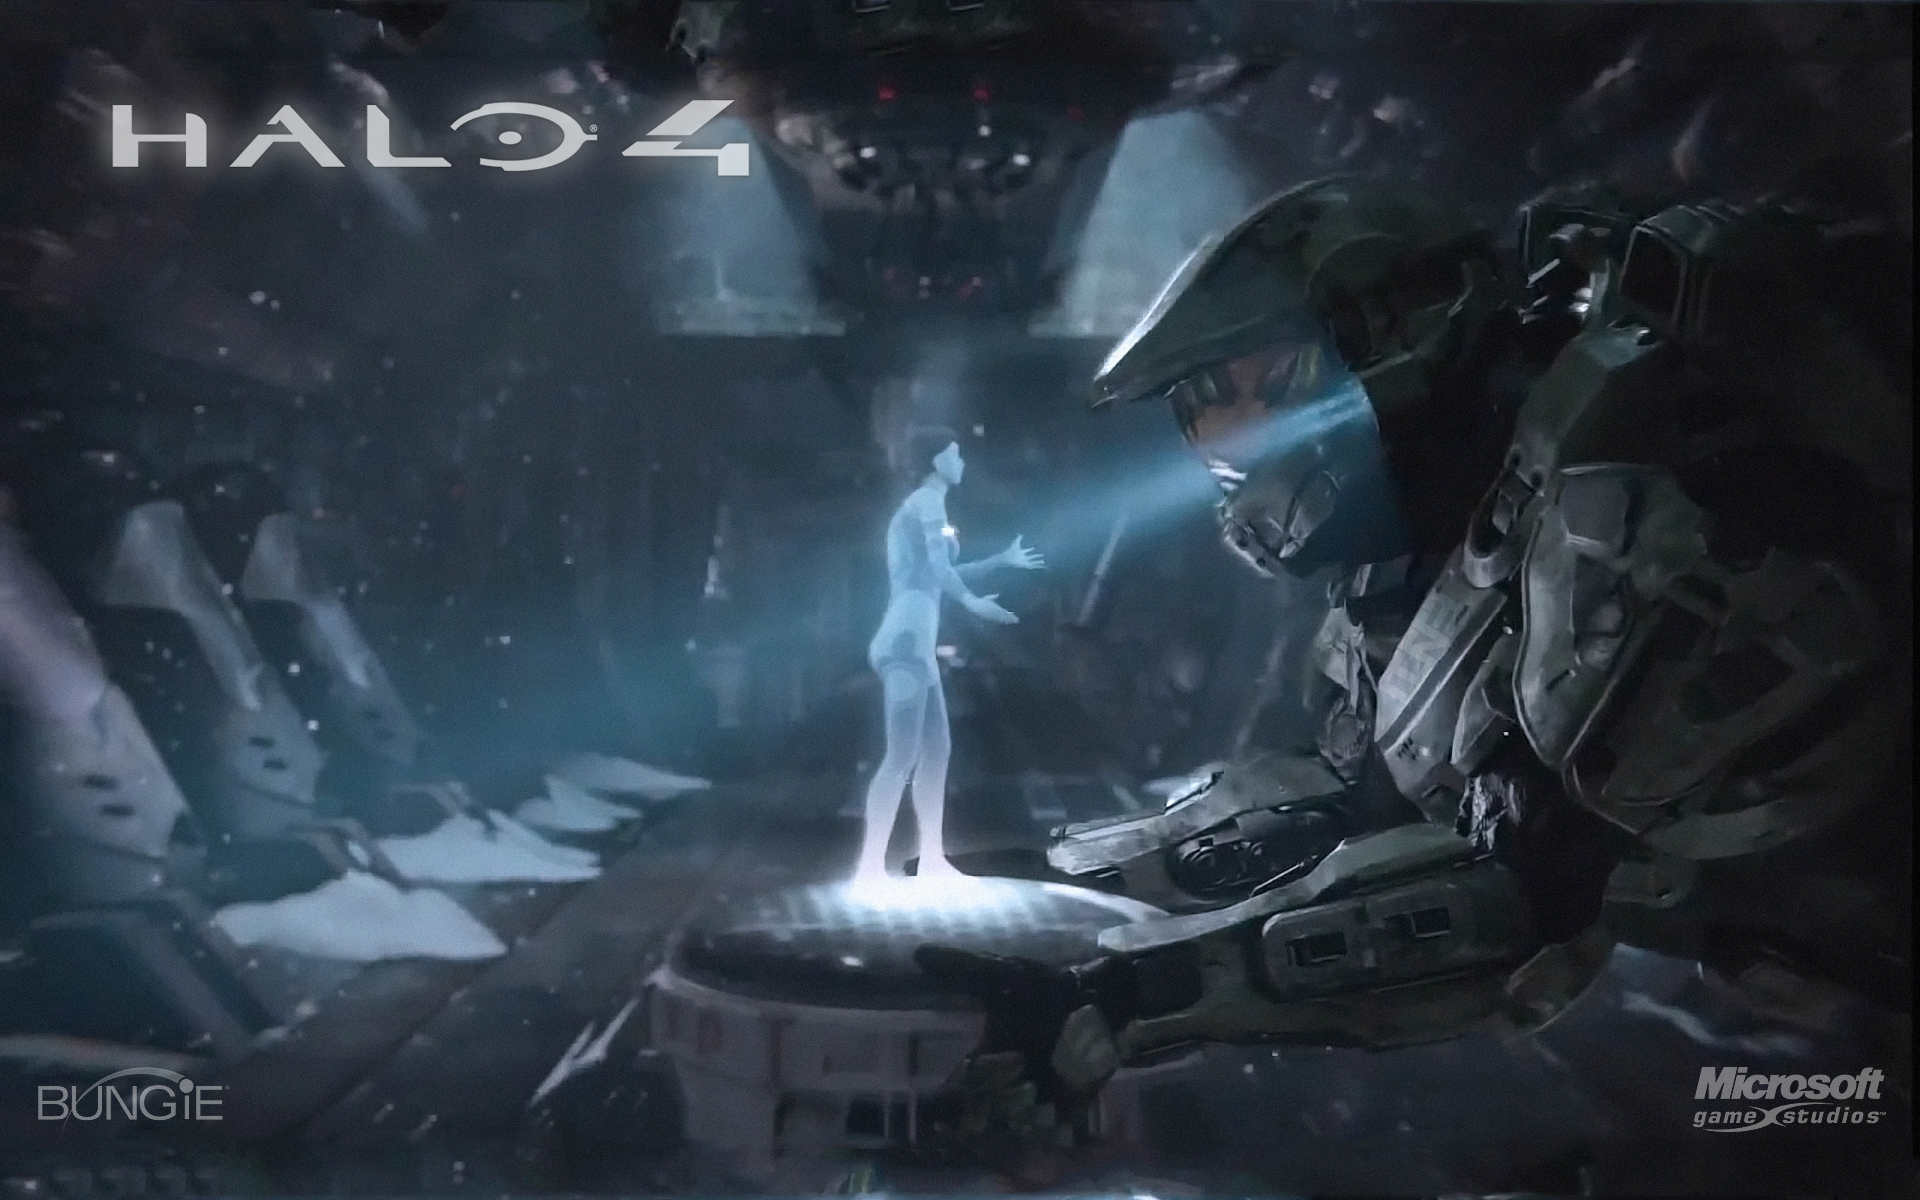 Halo 4 Wallpaper HD Exclusive by Ockre 1920x1200